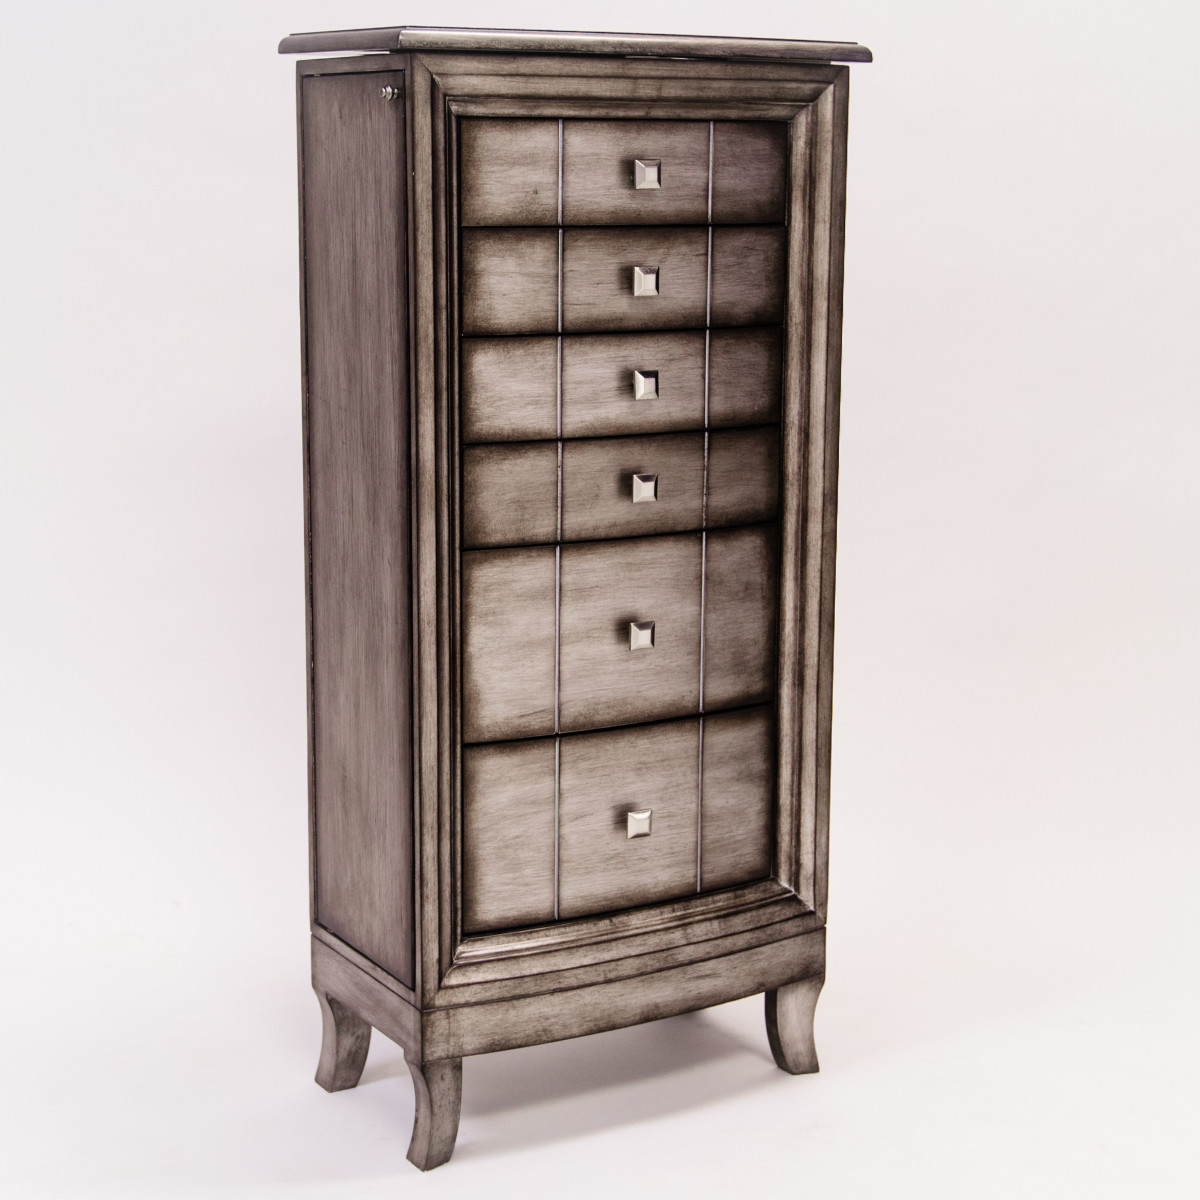 natalie jewelry armoire silver leaf hives and honey. Black Bedroom Furniture Sets. Home Design Ideas